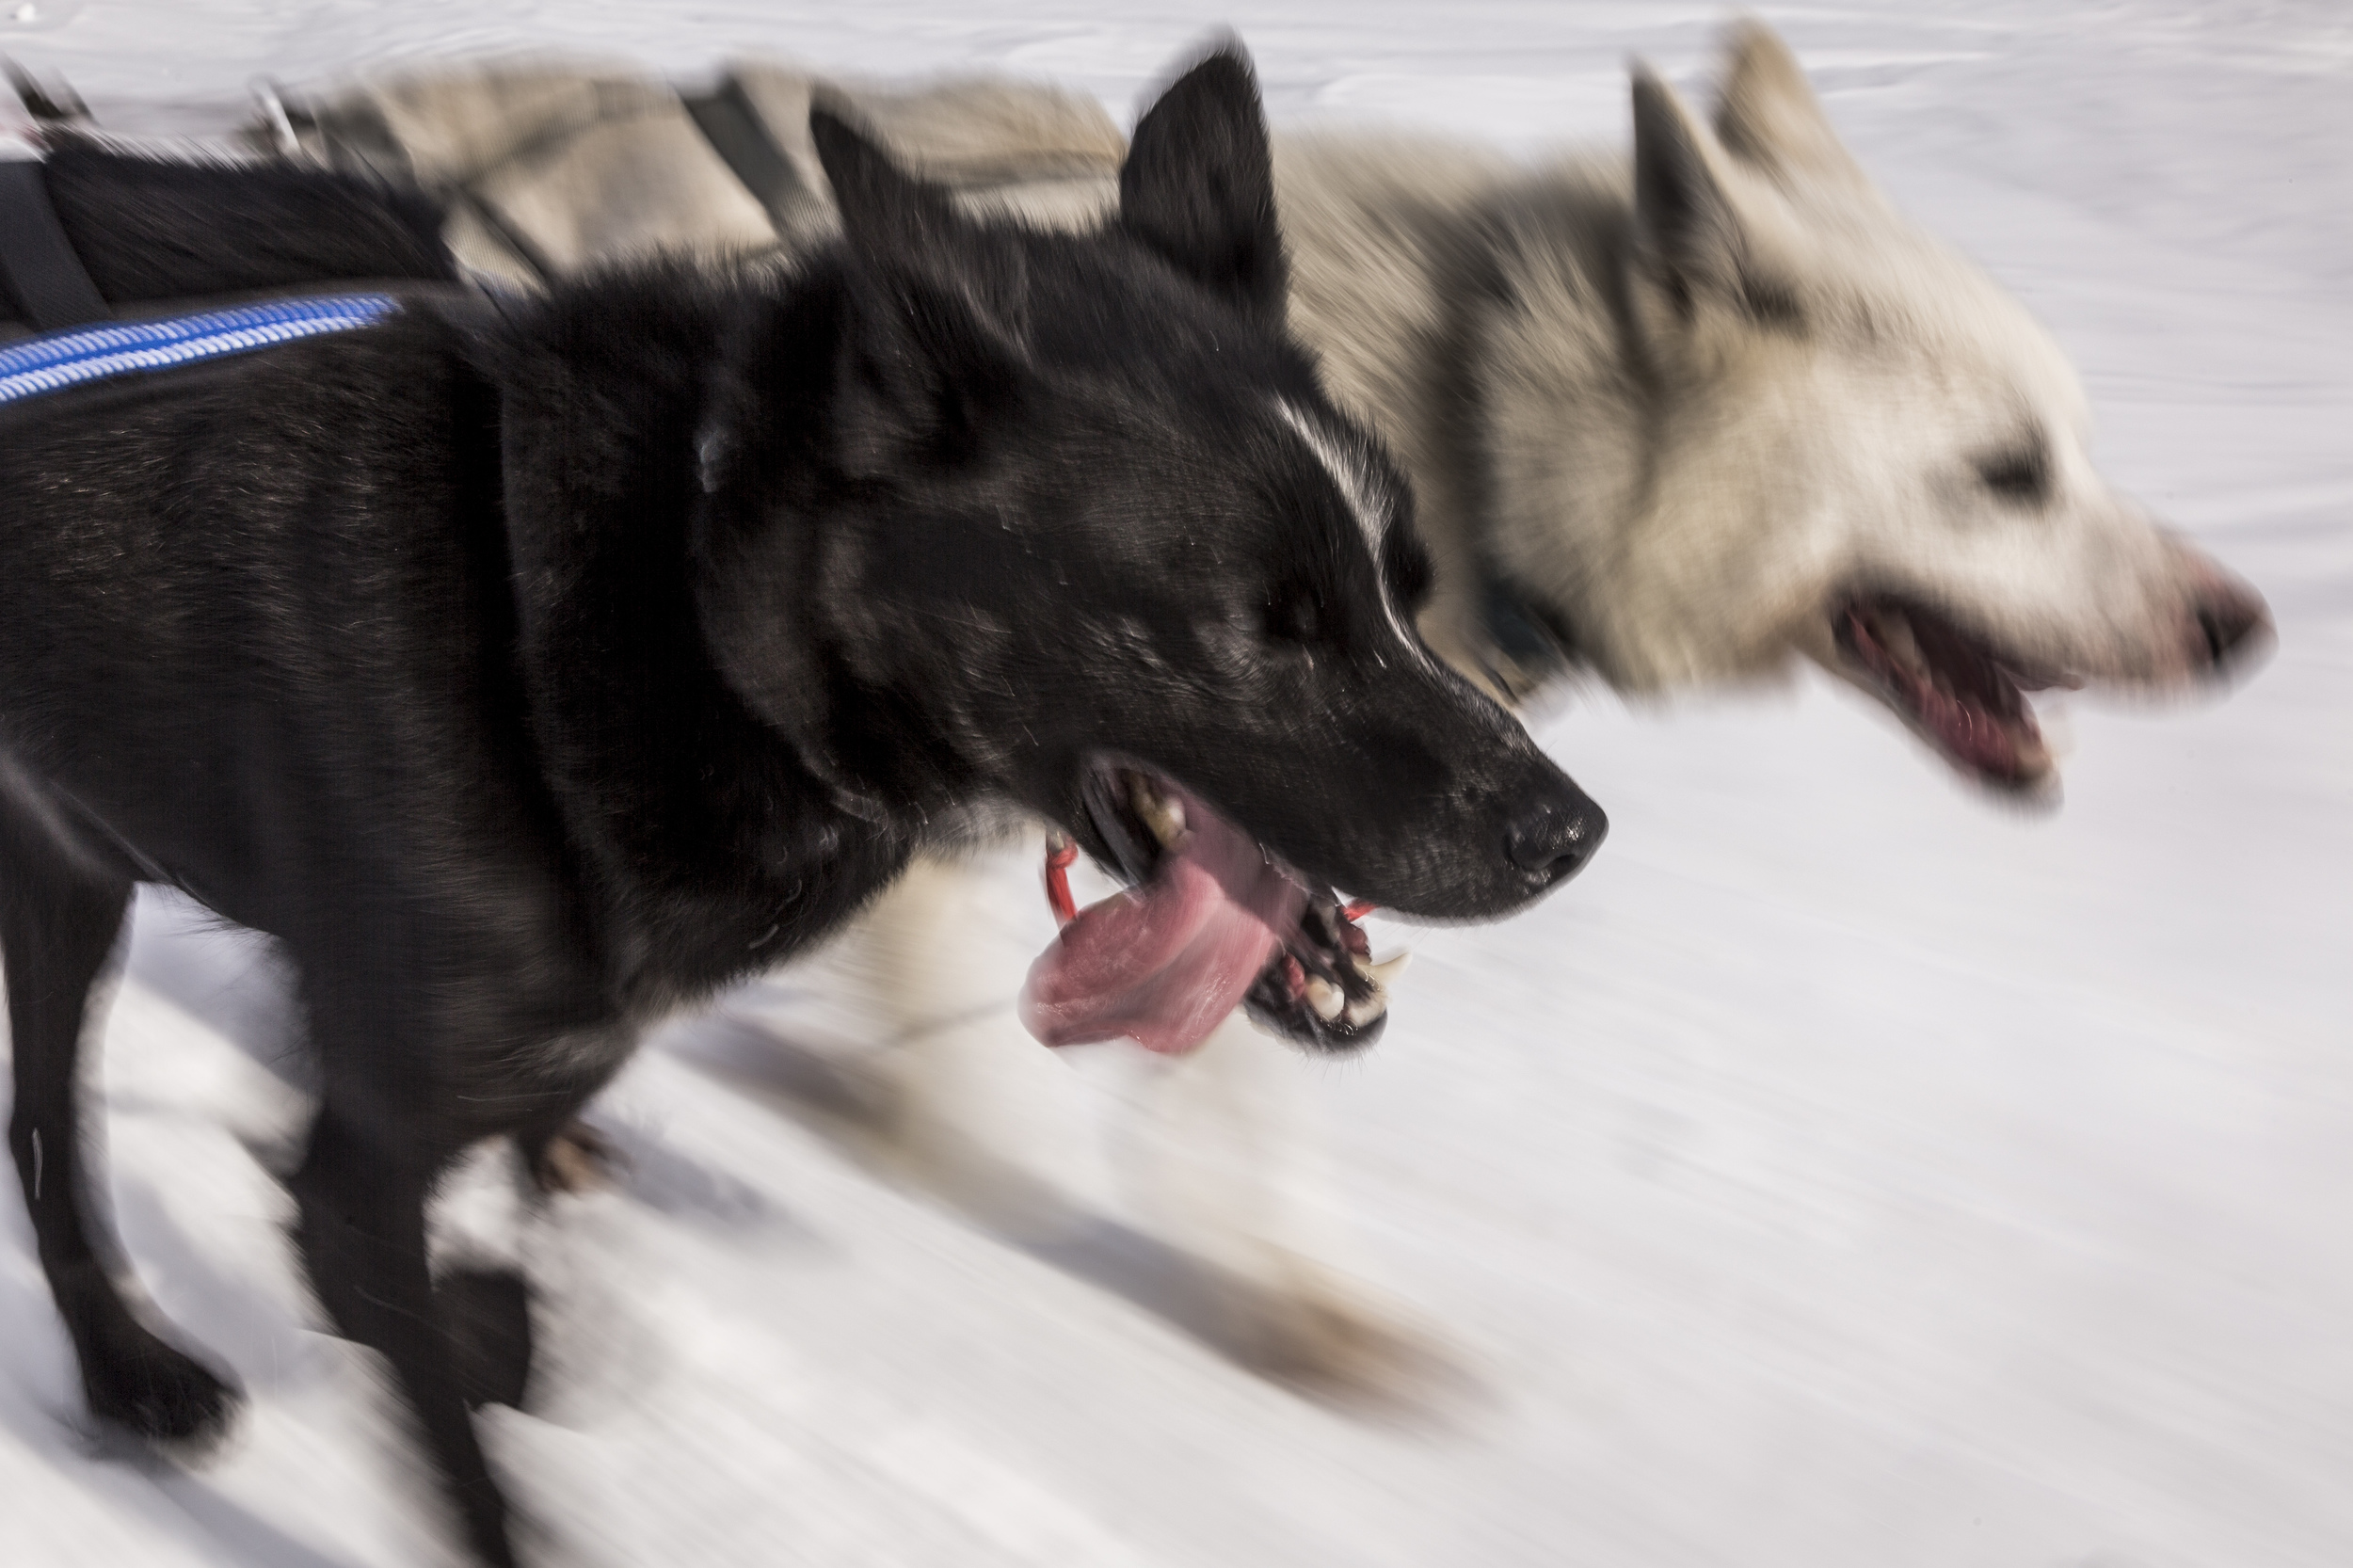 My dog team has seemingly endless reserves of energy. Even on uphills, I keep one foot lightly on the soft brake to avoid careening into the sled ahead of me. (Photo by Håkan Wike for Fjällräven International. All rights reserved.)